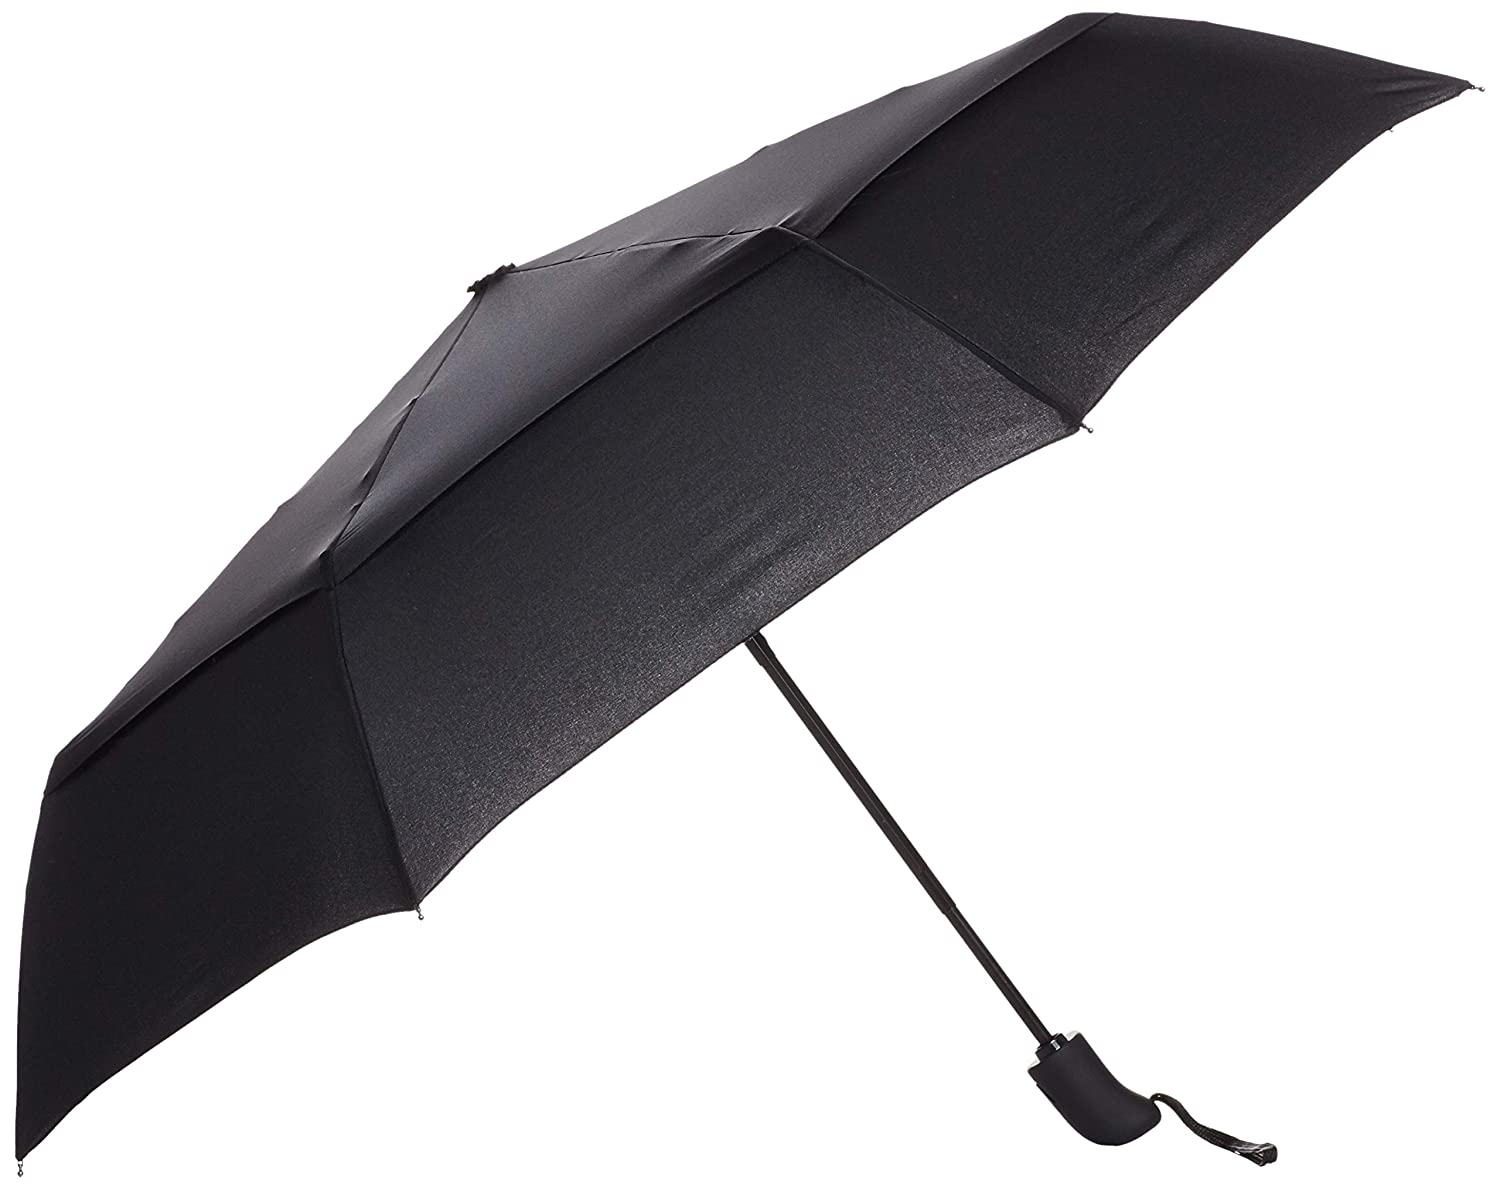 AmazonBasics Umbrella with Wind Vent (Auto-Open & Close Function) - Black